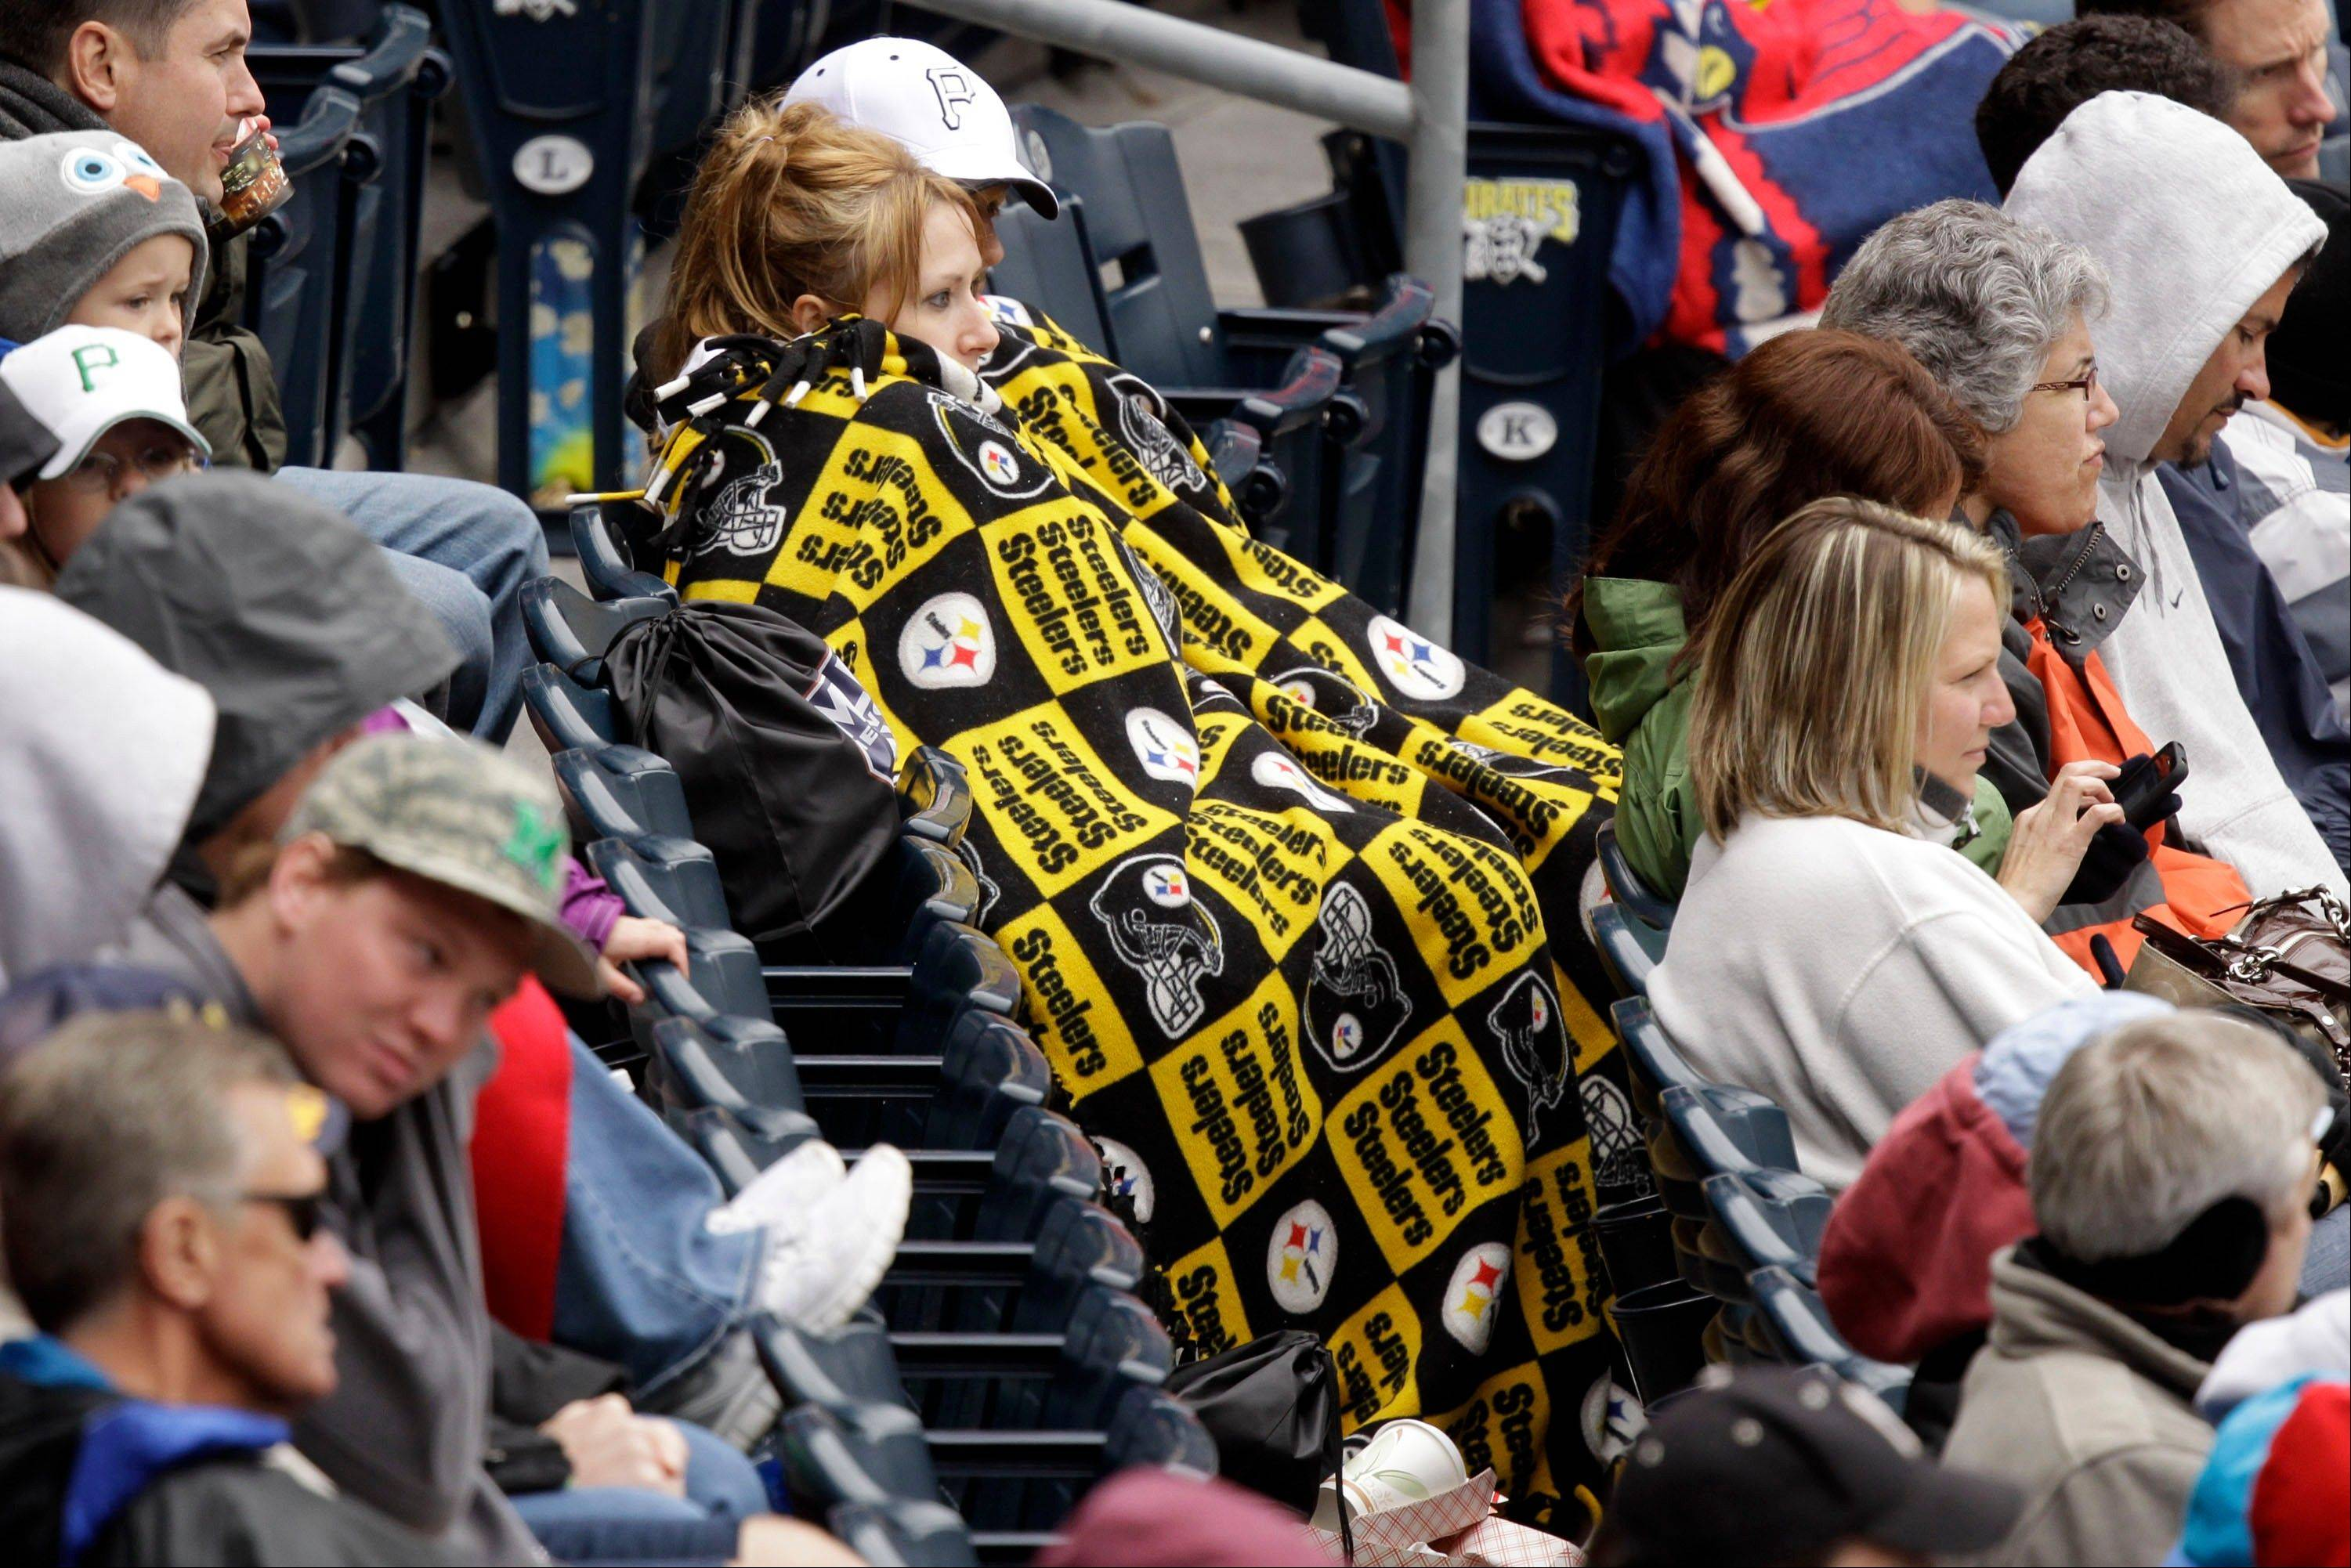 Pittsburgh Pirates fans sit bundled in a Pittsburgh Steelers blanket while watching a baseball game between the St. Louis Cardinals and the Pirates in Pittsburgh on Sunday, April 22, 2012. The Cardinals won 5-1. A spring nor'easter rumbled along the East Coast on Sunday and was expected to bring rain and heavy winds and even snow in some places as it strengthens into early Monday, a punctuation to a relatively dry stretch of weather for the Northeast.